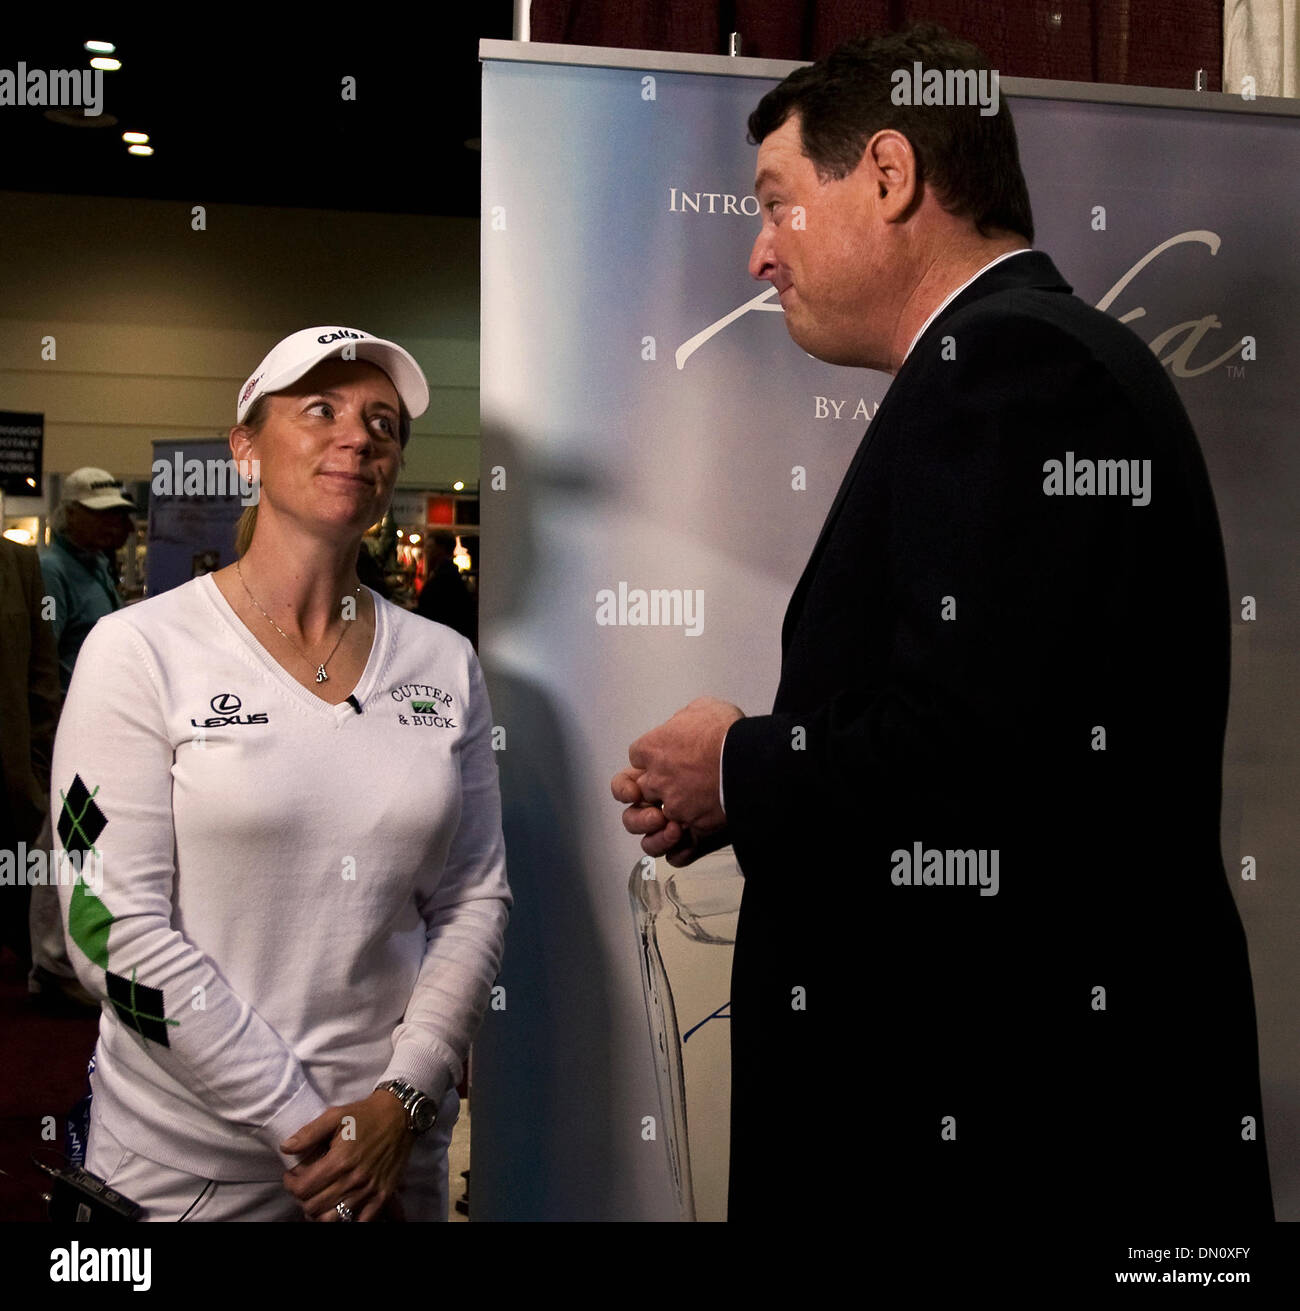 Jan. 28, 2010 - Orlando, Florida USA - New mom ANNIKA SORENSTAM gives the Golf Channel's CHARLIE RYMER a look after he asks her about changing diapers during an on-camera interview at the 57th PGA Merchandise Show. (Credit Image: © Brian Cahn/ZUMApress.com) - Stock Image